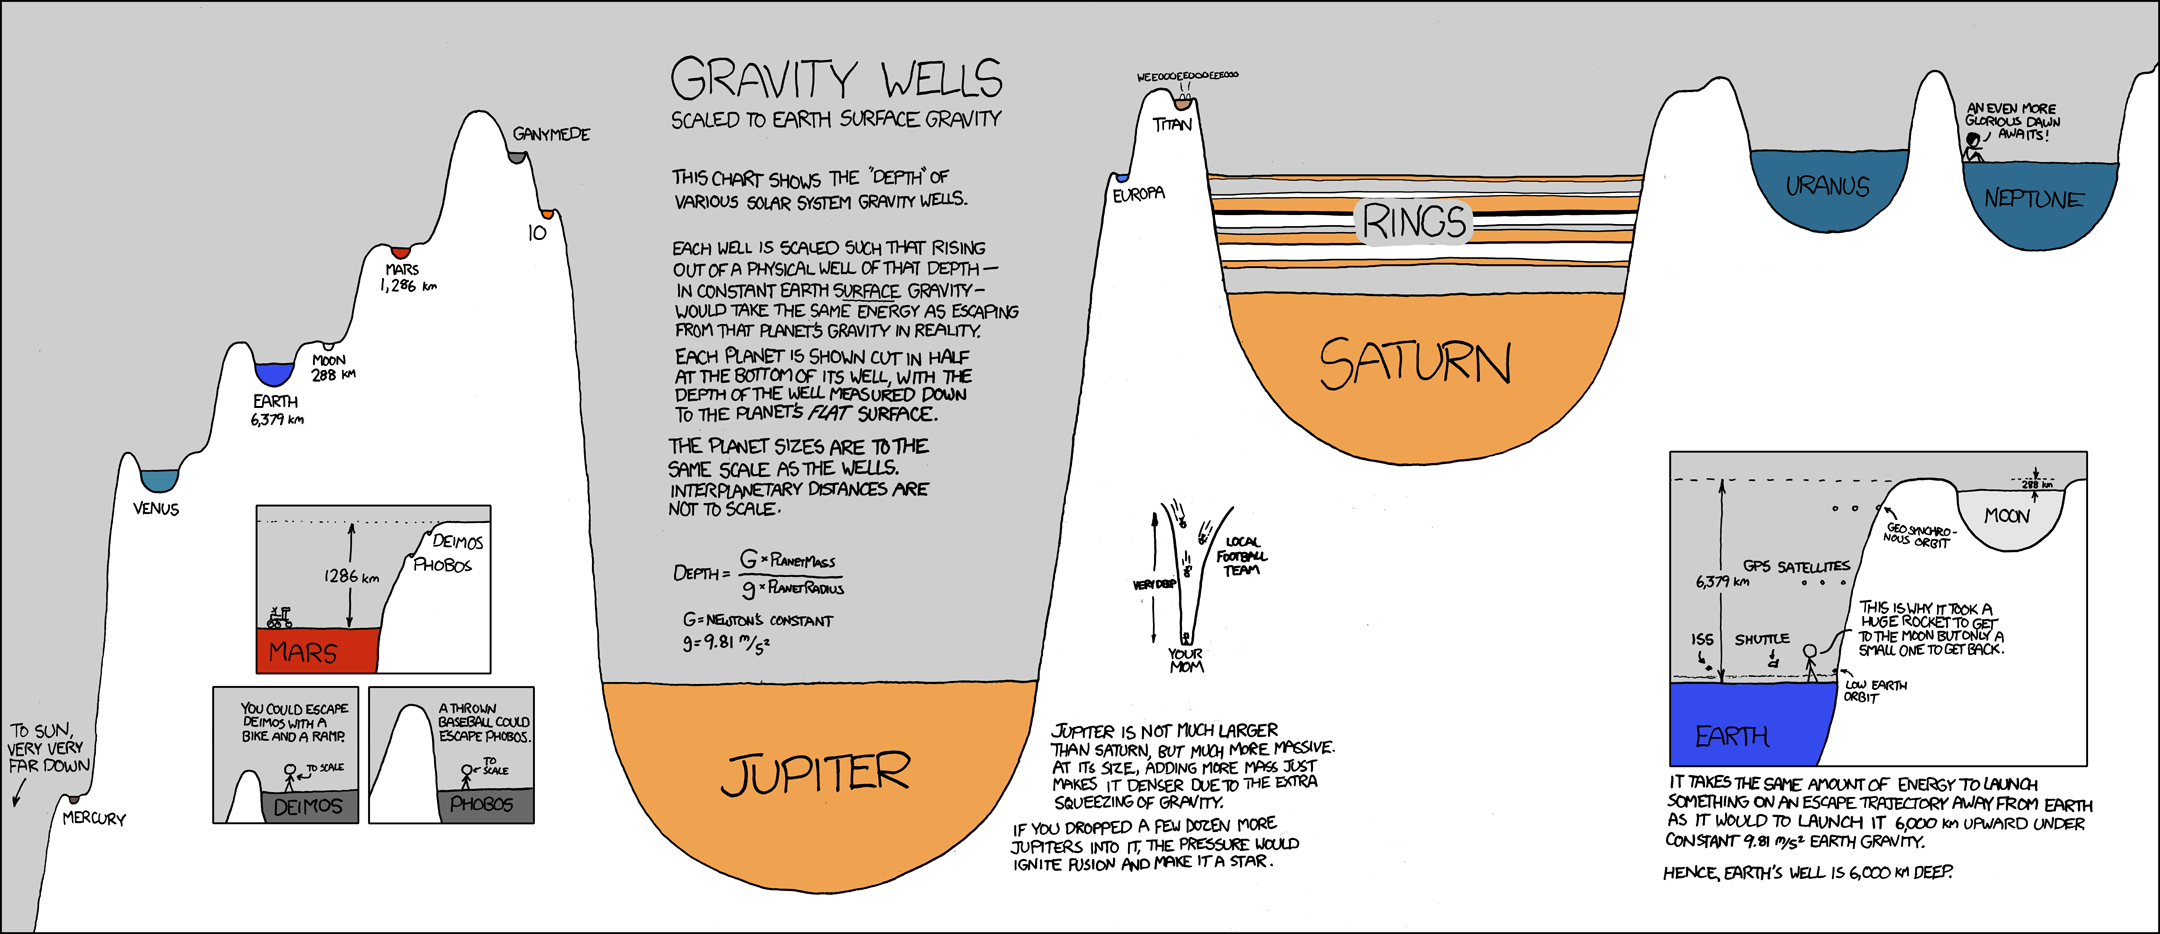 Xkcd gravity wells heaviest objects in the universe know your meme gravity wells an even more scaled to earth surface gravity thpn ganymede this chart shoks the gumiabroncs Image collections